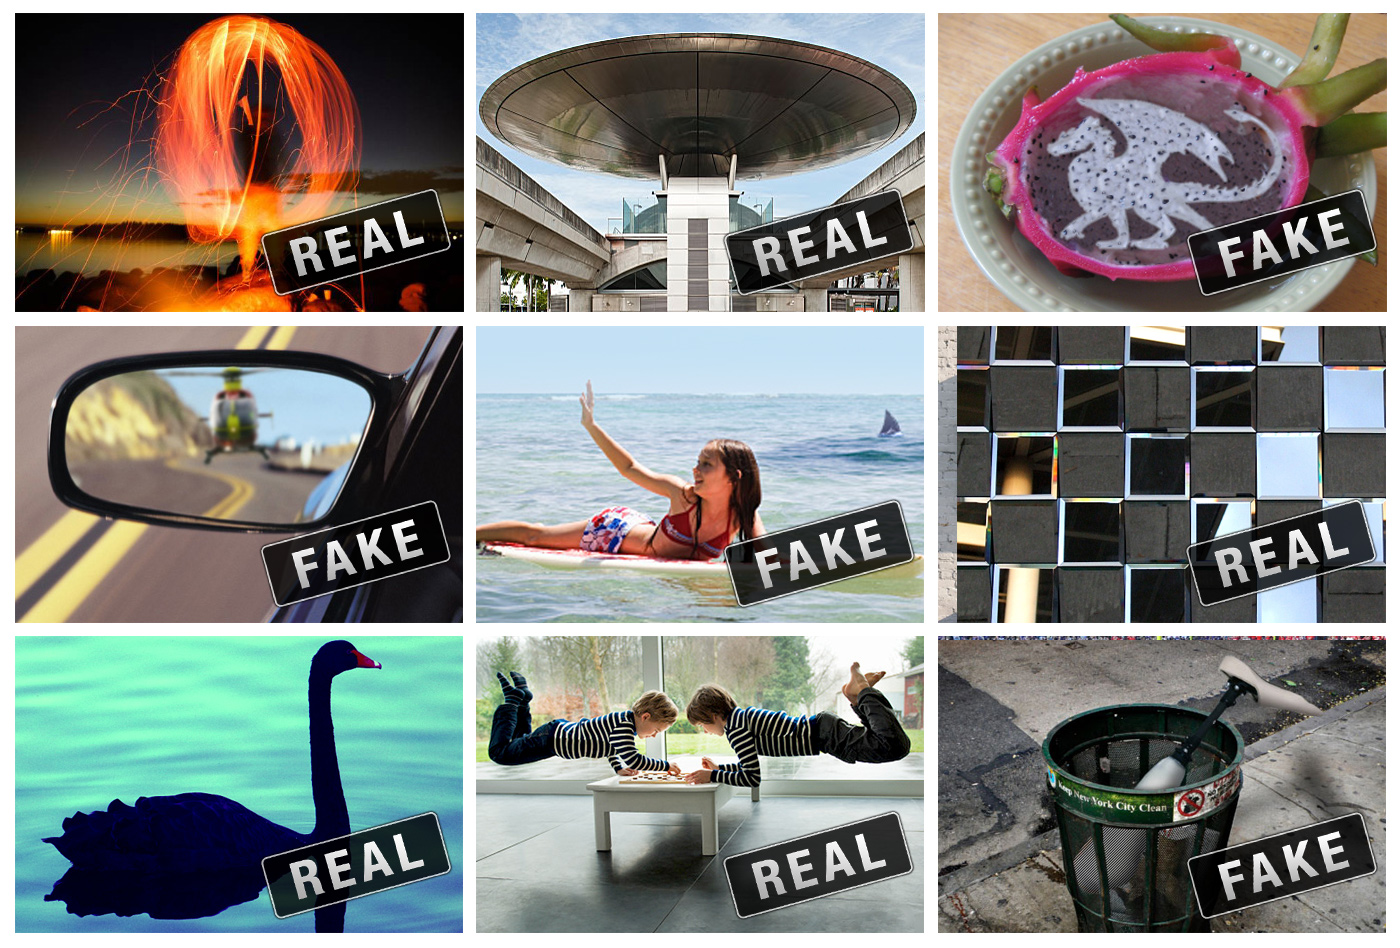 Adobe Real or Fake Campaign by Traction